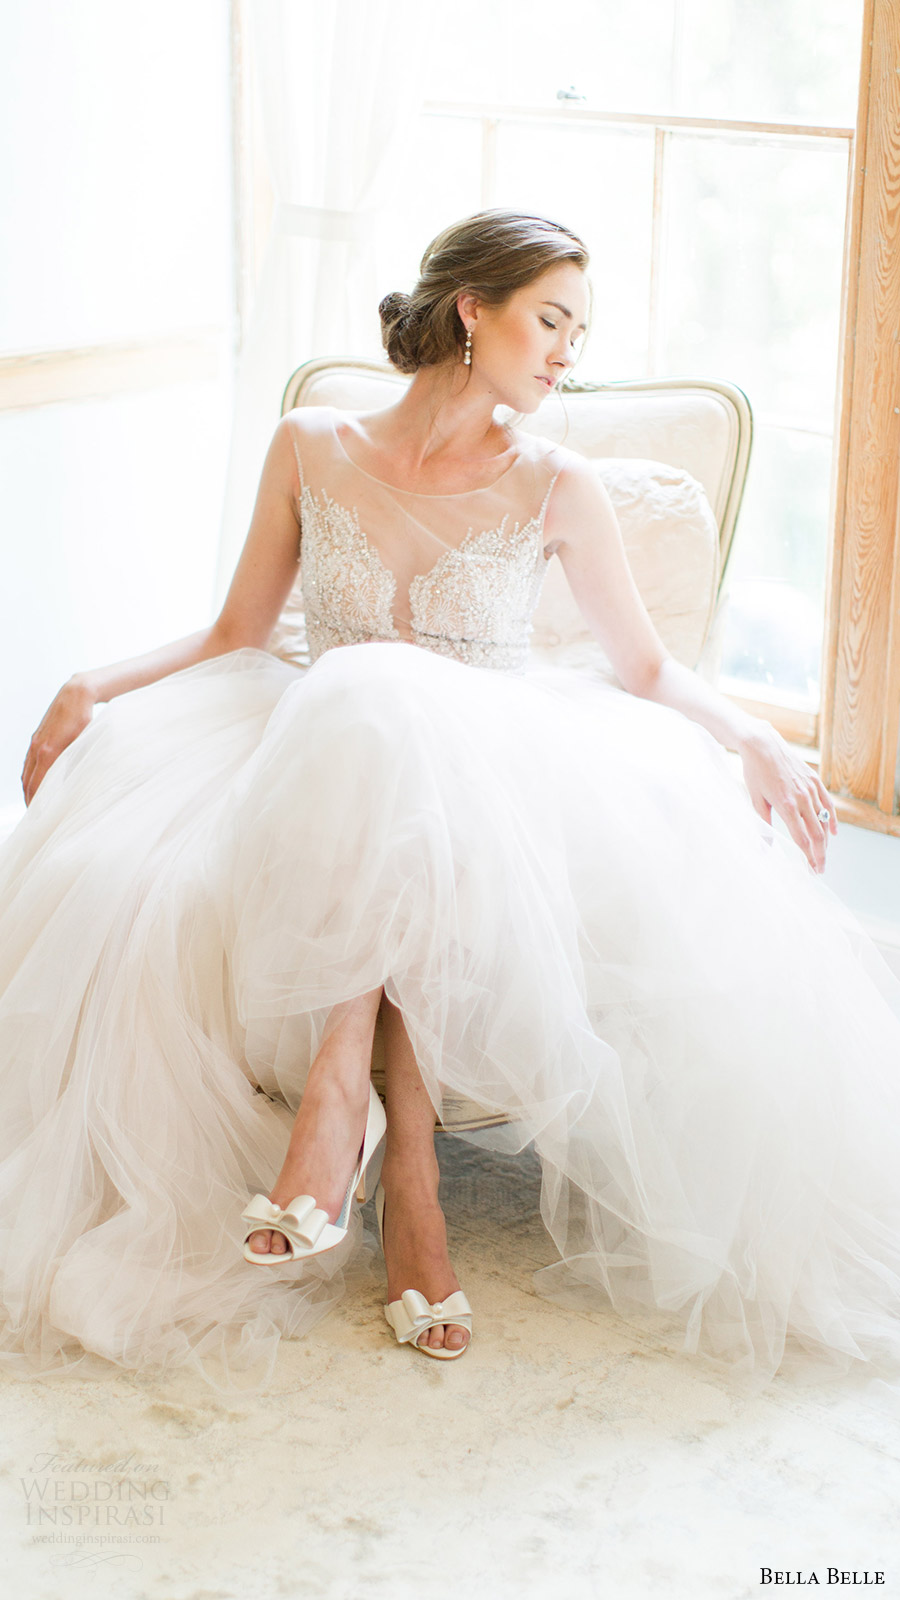 bella belle bridal shoes 2016 julia d orsay peep toe 3.5 inch heels wedding shoes watters wtoo gown